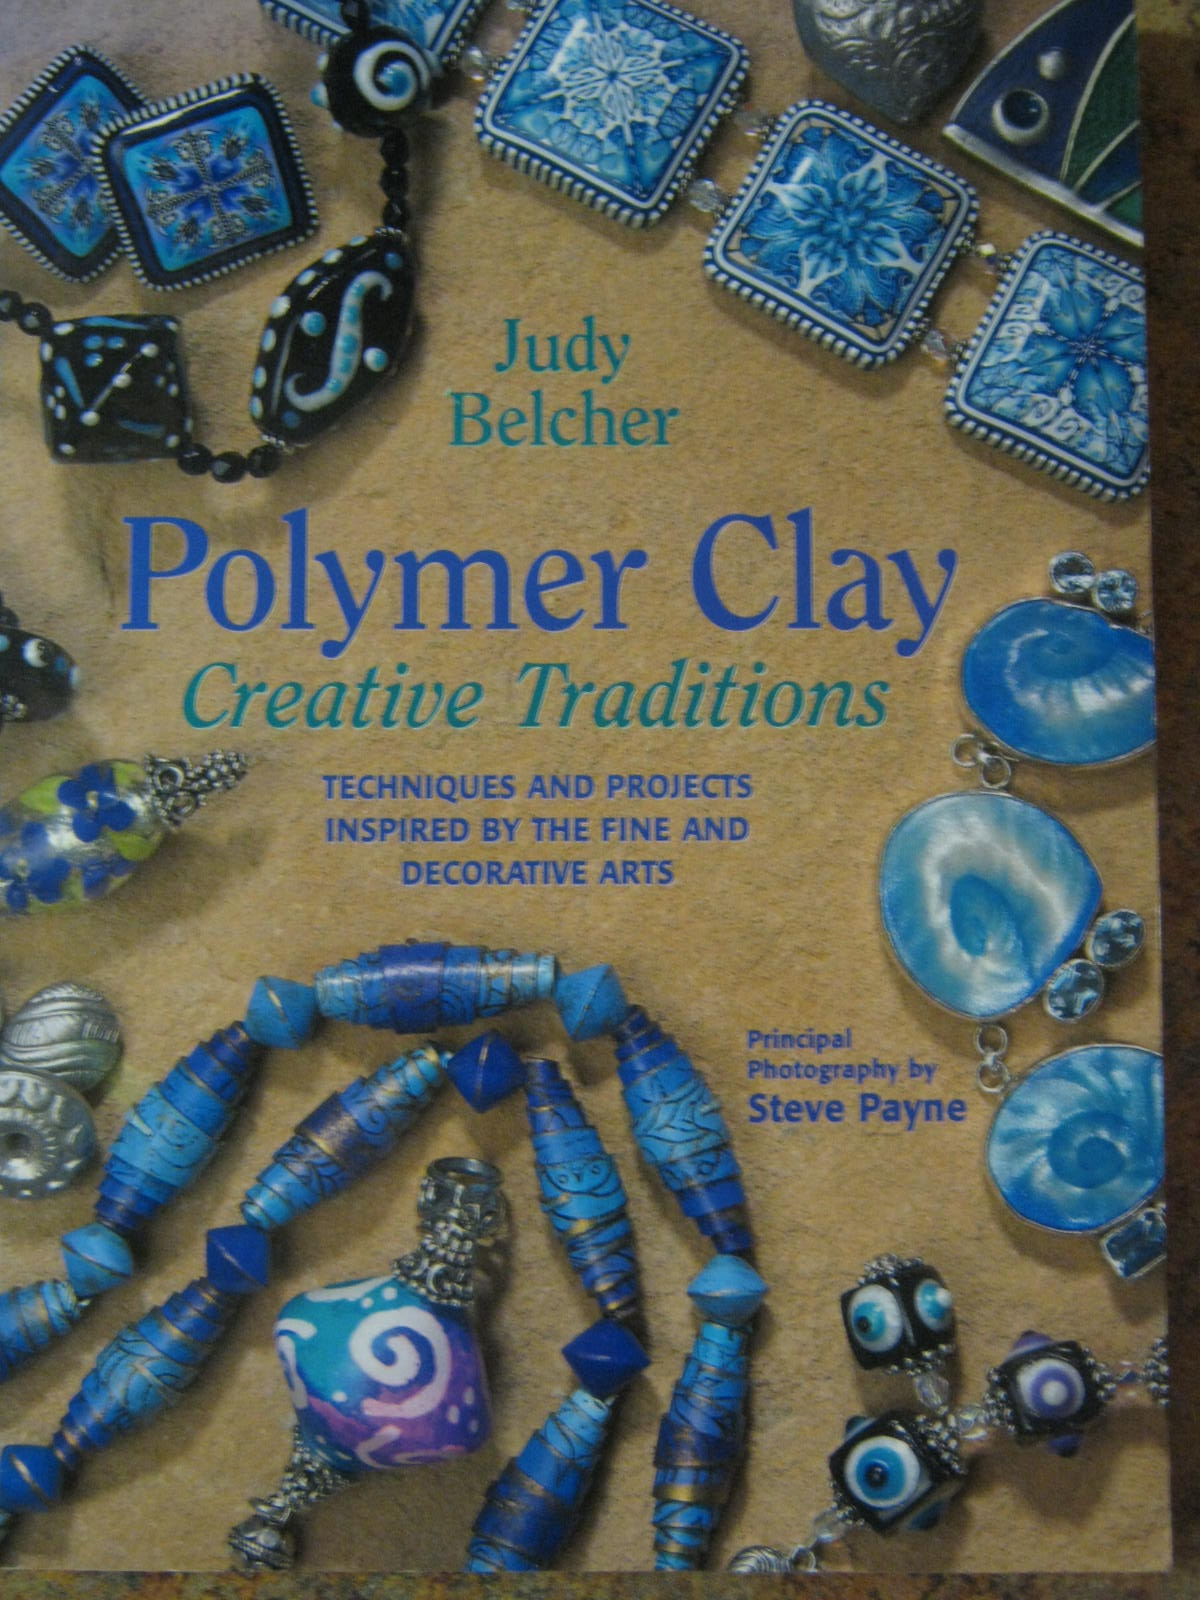 polymer clay creative traditions techniques and projects inspired by the fine and decorative arts